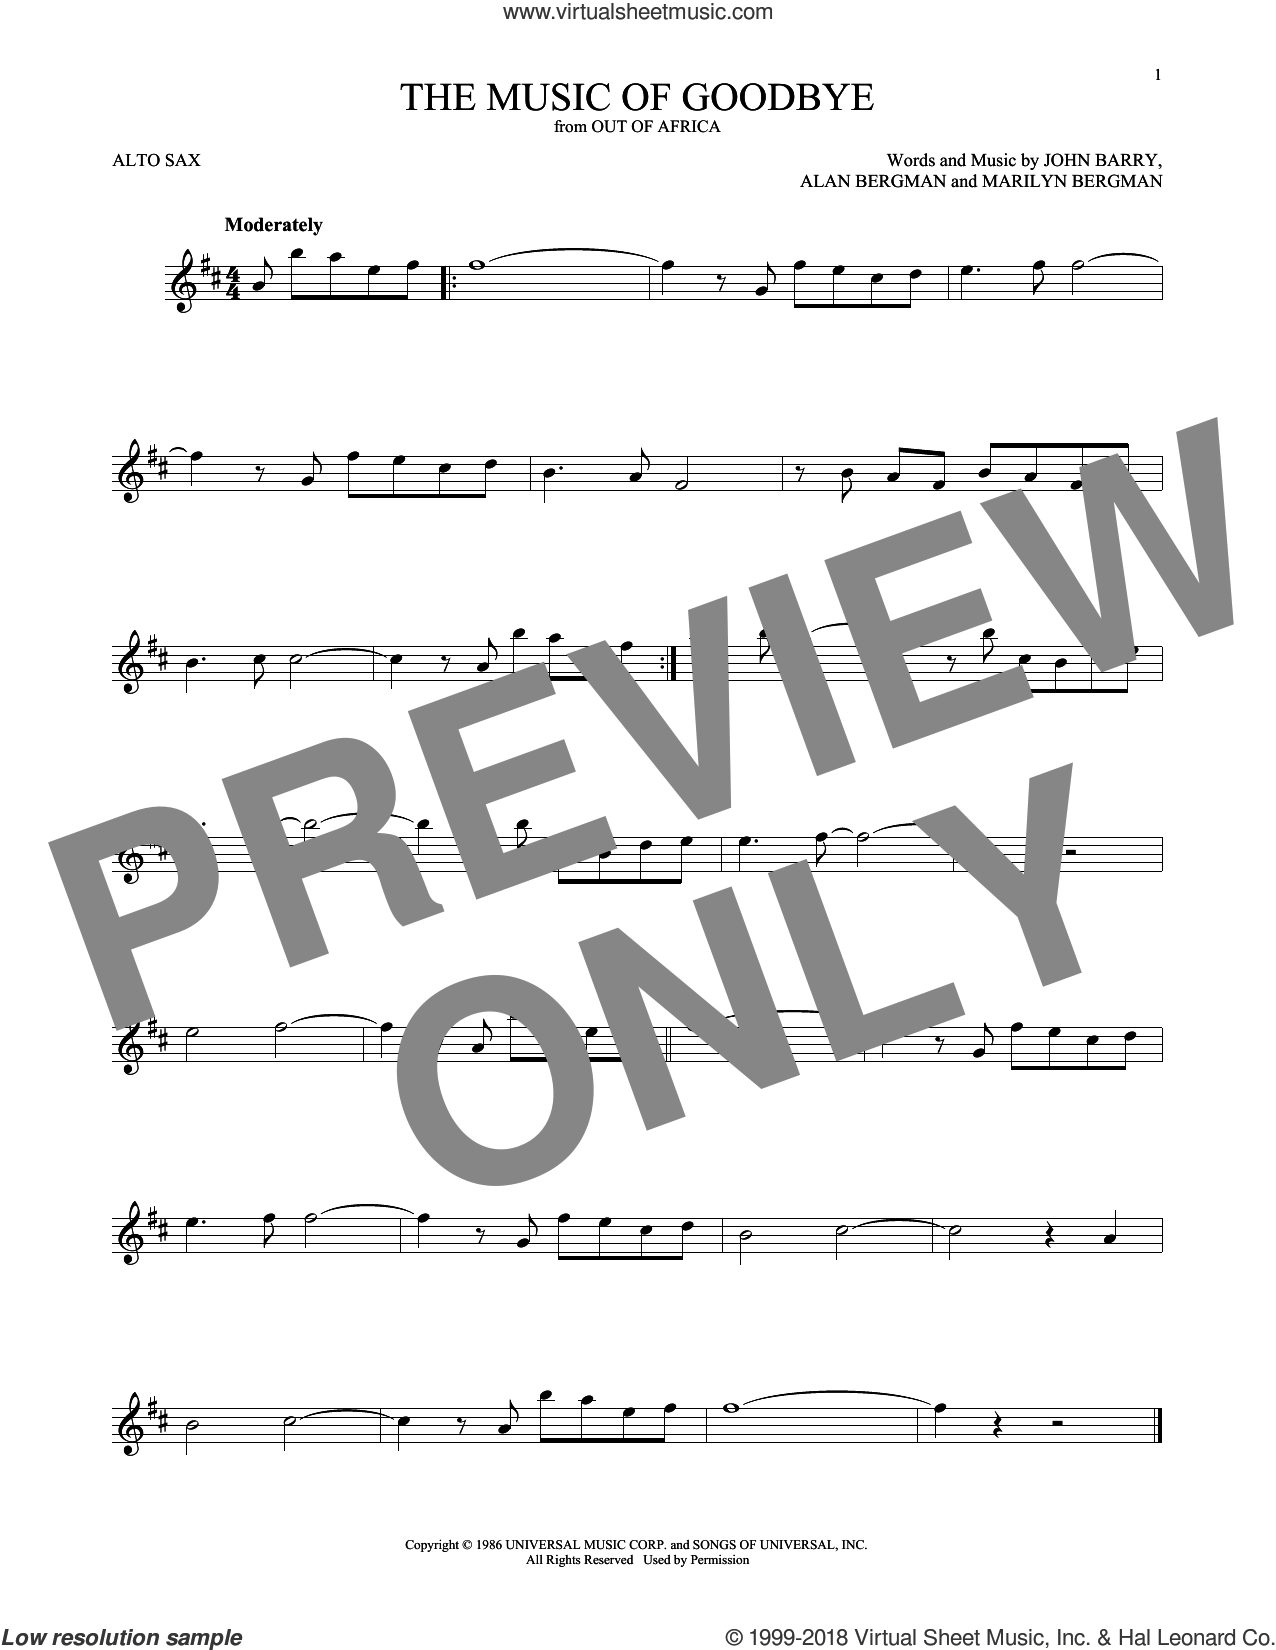 The Music Of Goodbye sheet music for alto saxophone solo ( Sax) by John Barry, Alan Bergman and Marilyn Bergman, intermediate alto saxophone ( Sax). Score Image Preview.